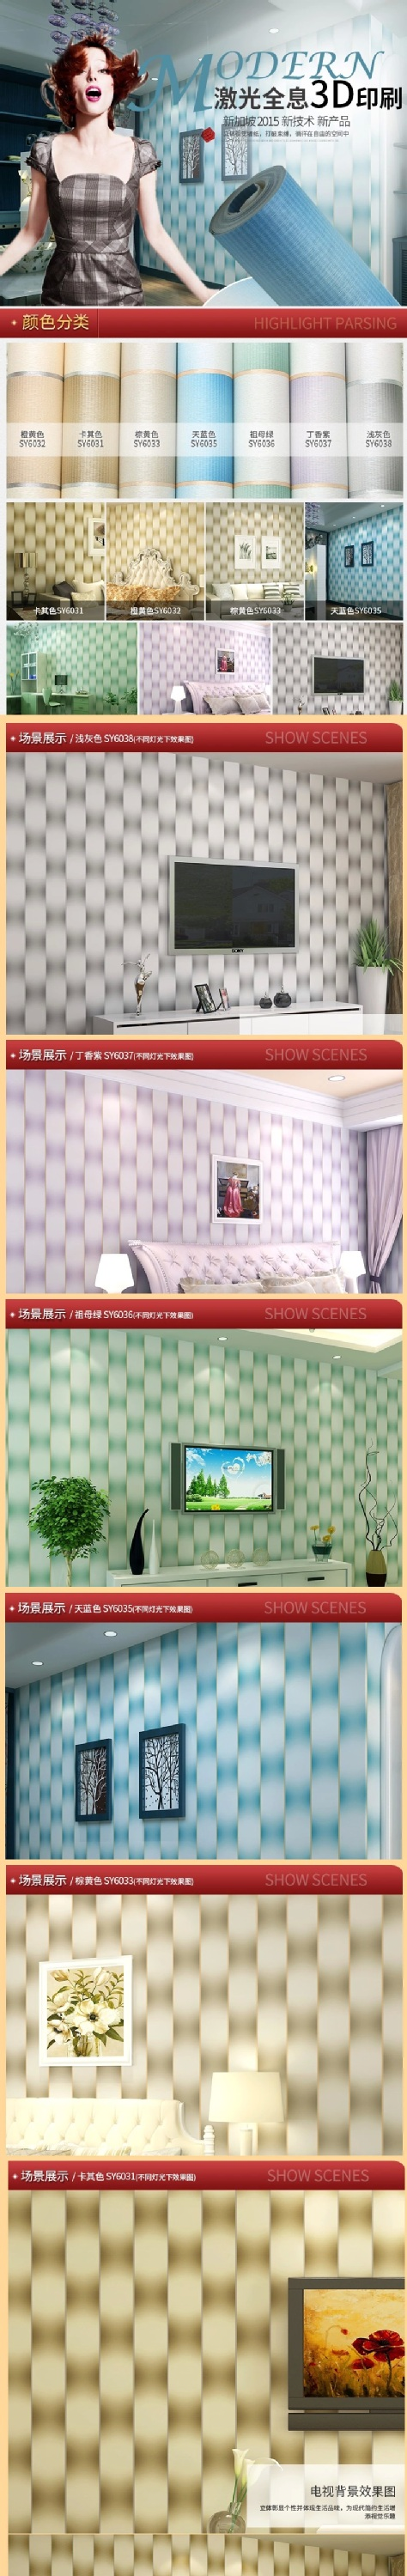 3d effect wallpaper wall paper/ korean/photo frame wallpaper papier peint enduit de vinyle lourd